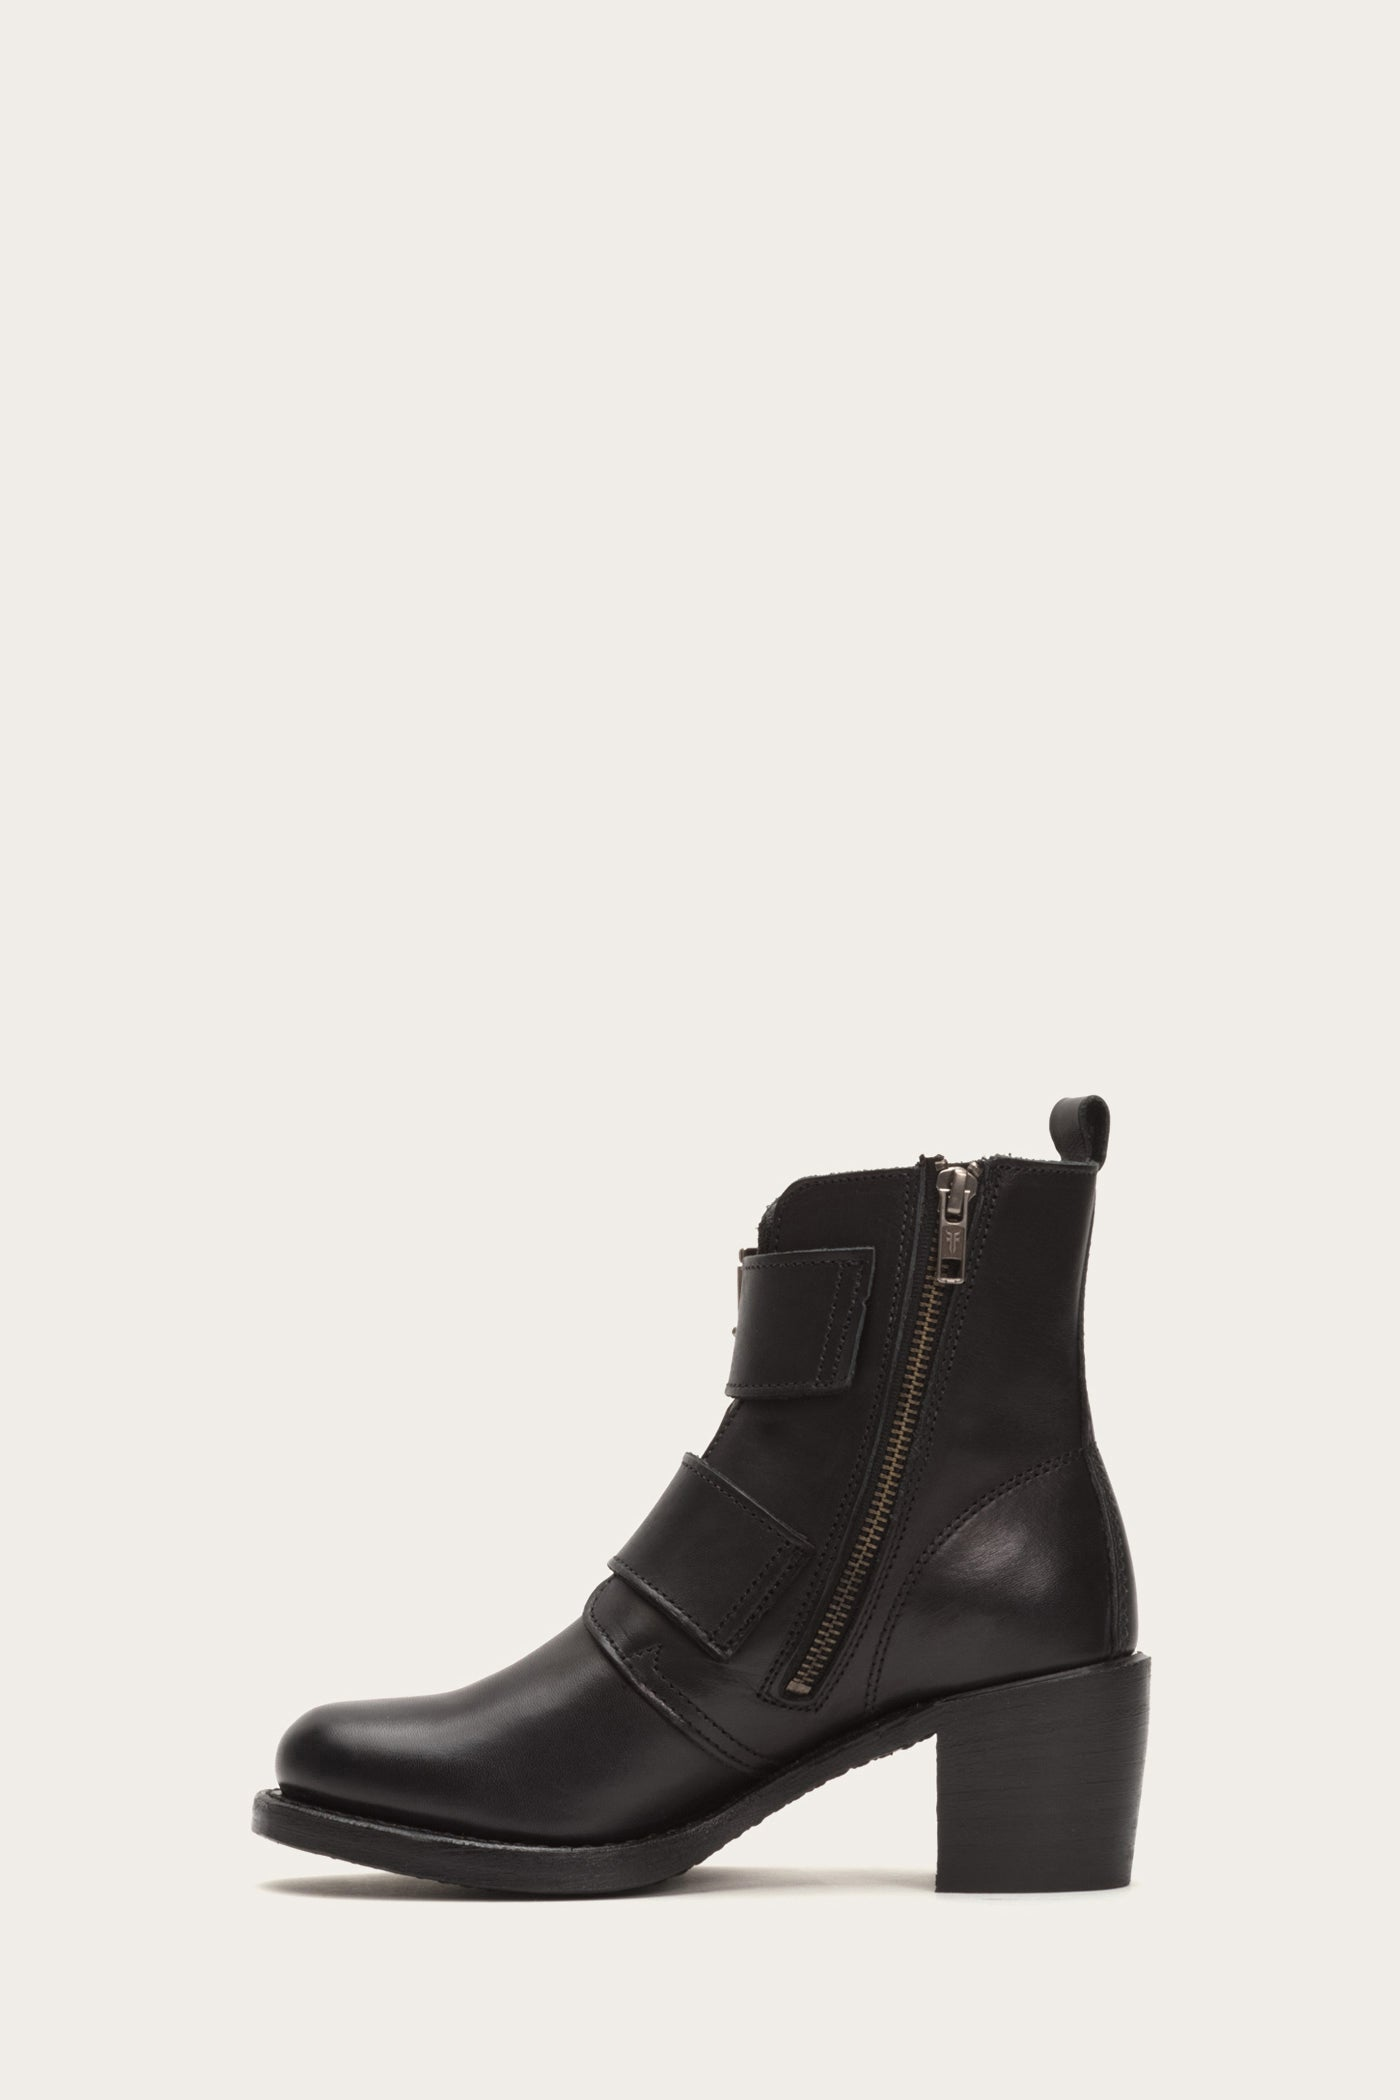 Details about  /Ladies Easy B Leather 2V Fit Zip Up Ankle Boots FACTORY SECONDS Rouen